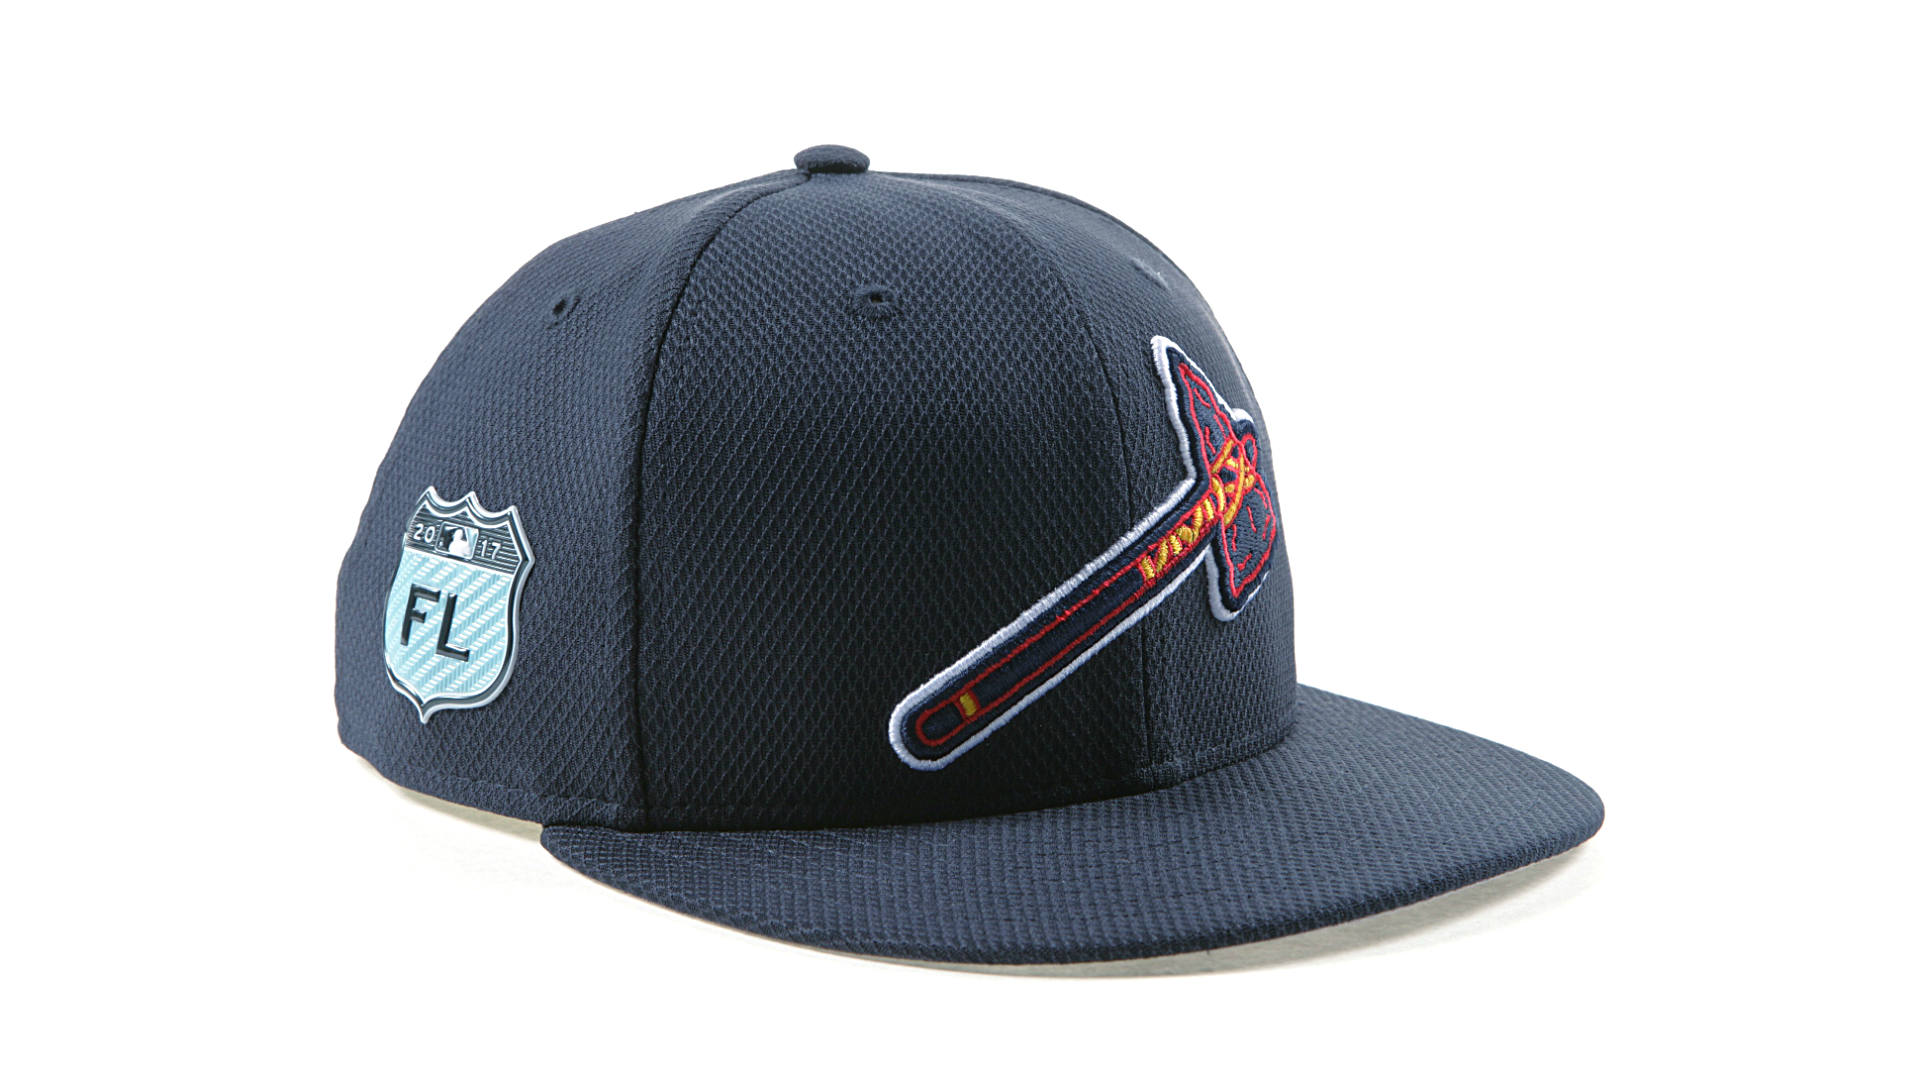 2b00fbaacf0 Dear MLB  Please stop ruining your hats with dumb patches